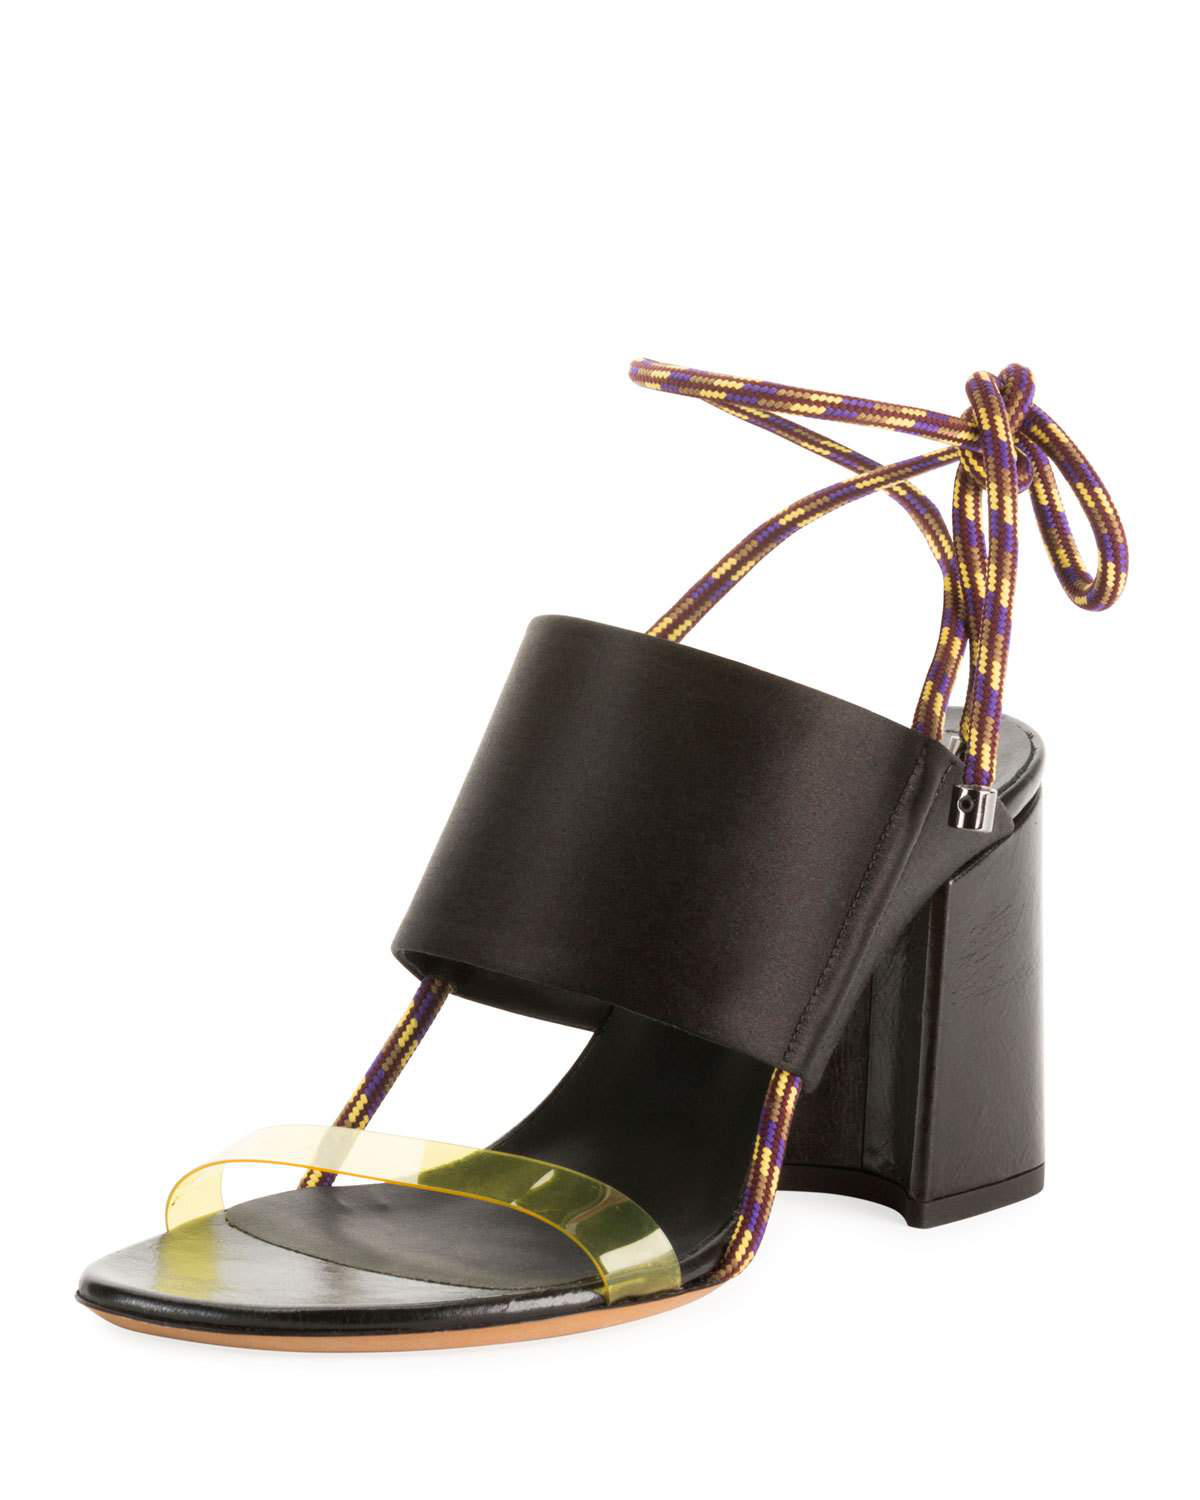 a06819d667 Dries Van Noten Calf Leather Ankle-Tie Sandals In Black | ModeSens